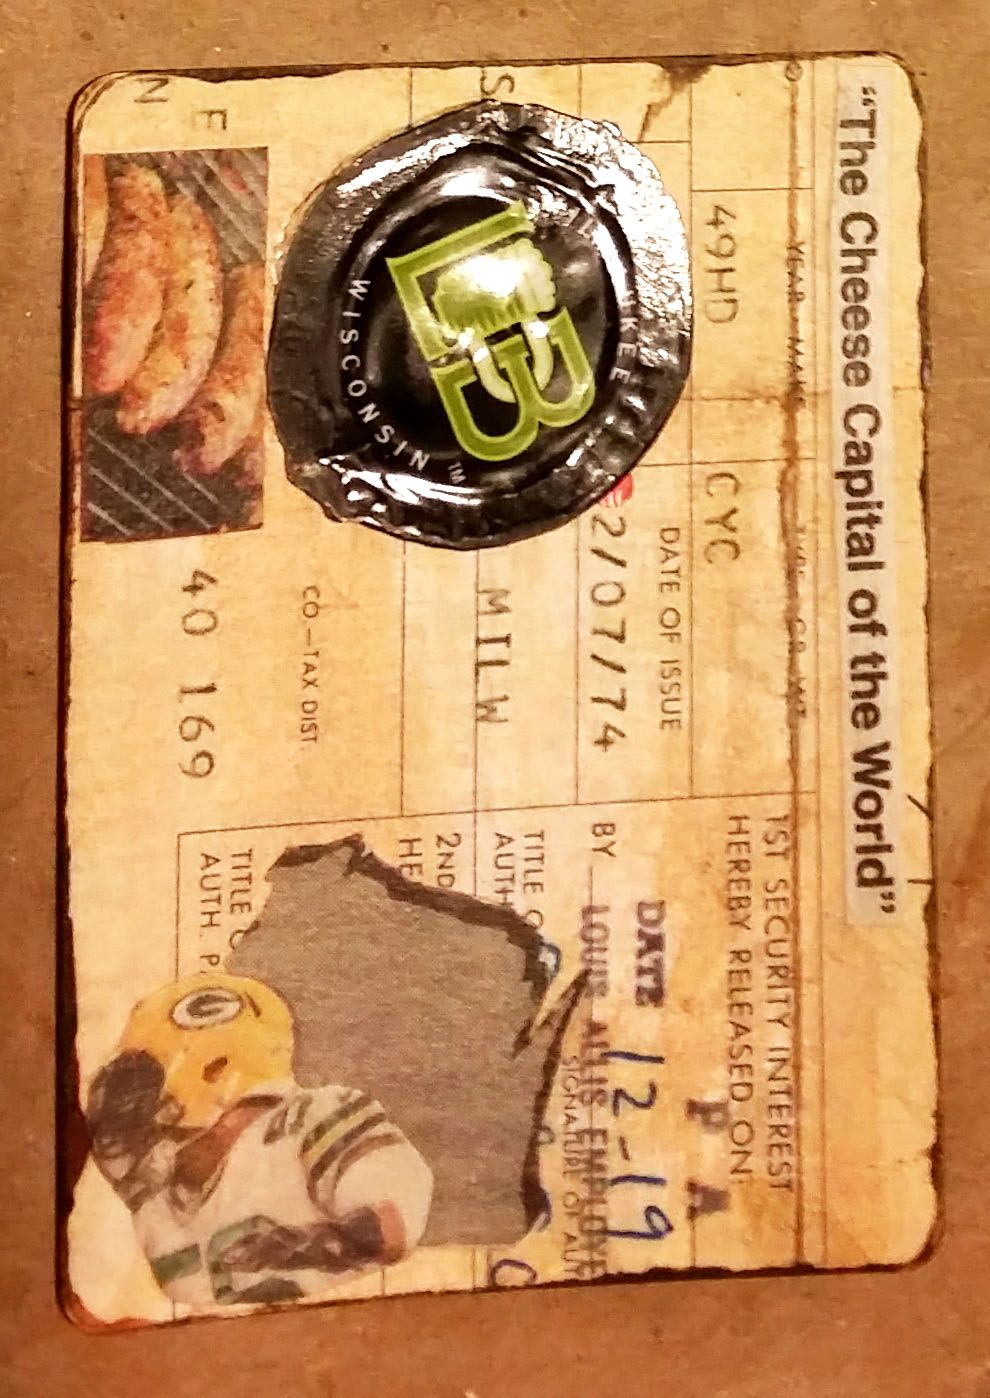 """ATC #3 - October 2015 - Theme: """"Think Local"""" - Card from Sheepshead deck, Background is a piece of WI DMV vintage Harley Davidson Title aged with acrylic wash and edged with acrylic paint. Collaged with various newspaper clippings (brats, cheese, logos), embellished with a flattened WI brewed beer bottle cap. (approx. 18 made) Lynn B"""